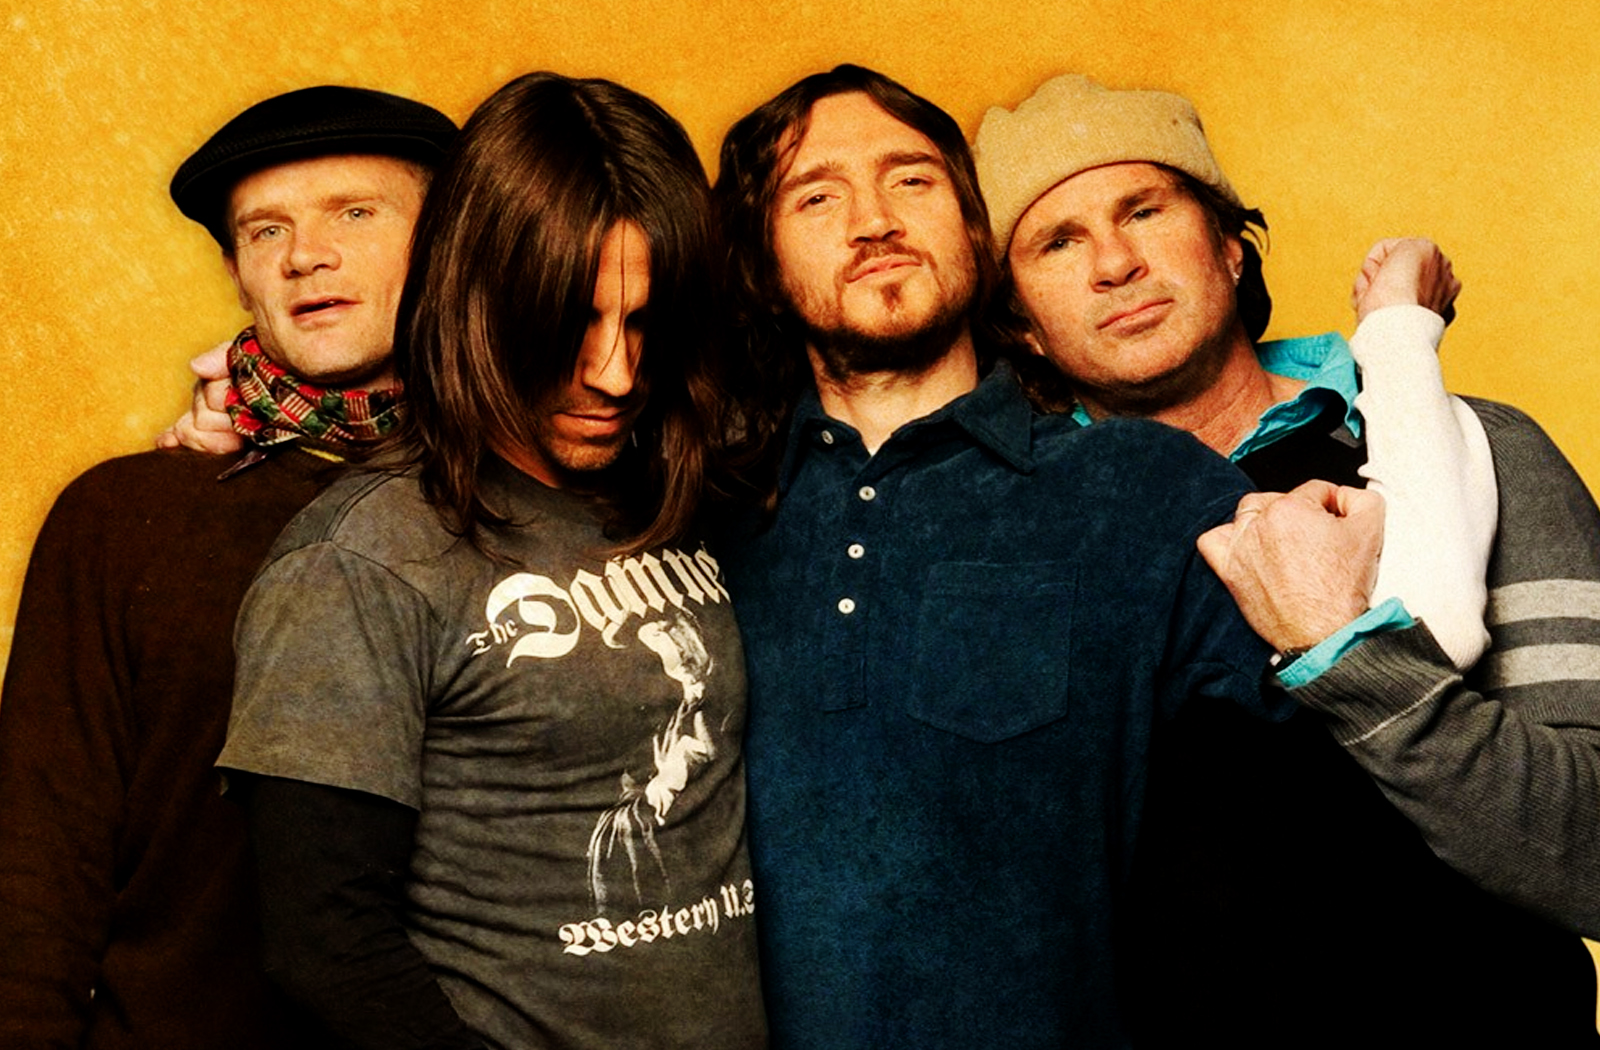 http://3.bp.blogspot.com/-igP6s_5XI3Y/TzL7uYEhqZI/AAAAAAAAAjw/FZSaF-gtdz0/s1600/Red_a_Chili_Peppers_Band_Members_HD_Wallpaper-Vvallpaper.Net.jpg